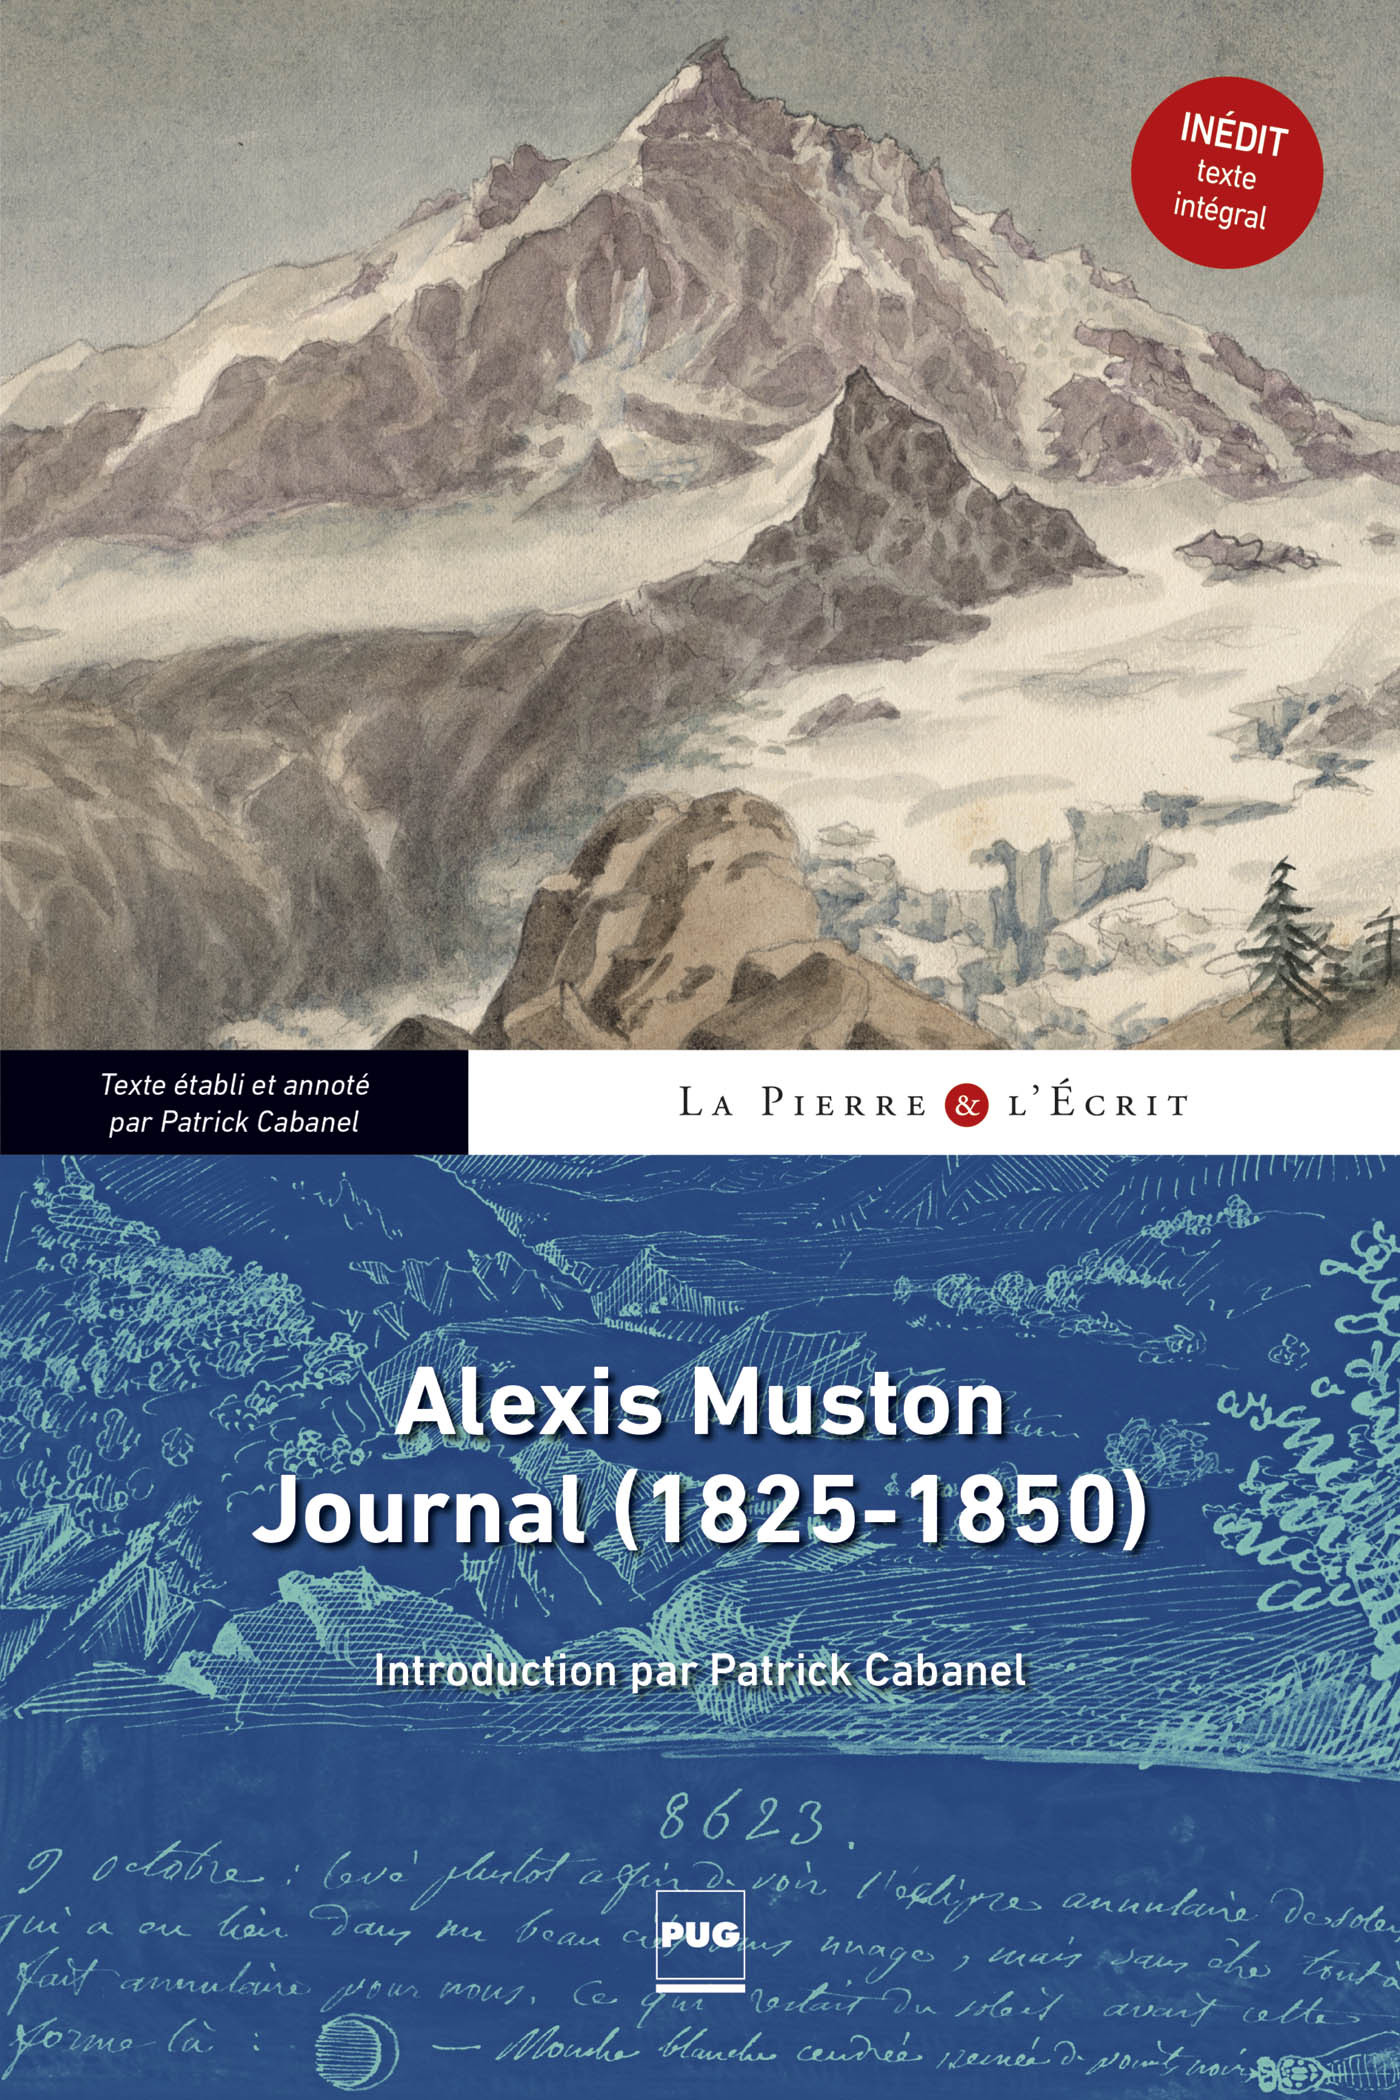 ALEXIS MUSTON, JOURNAL (1825 - 1850)